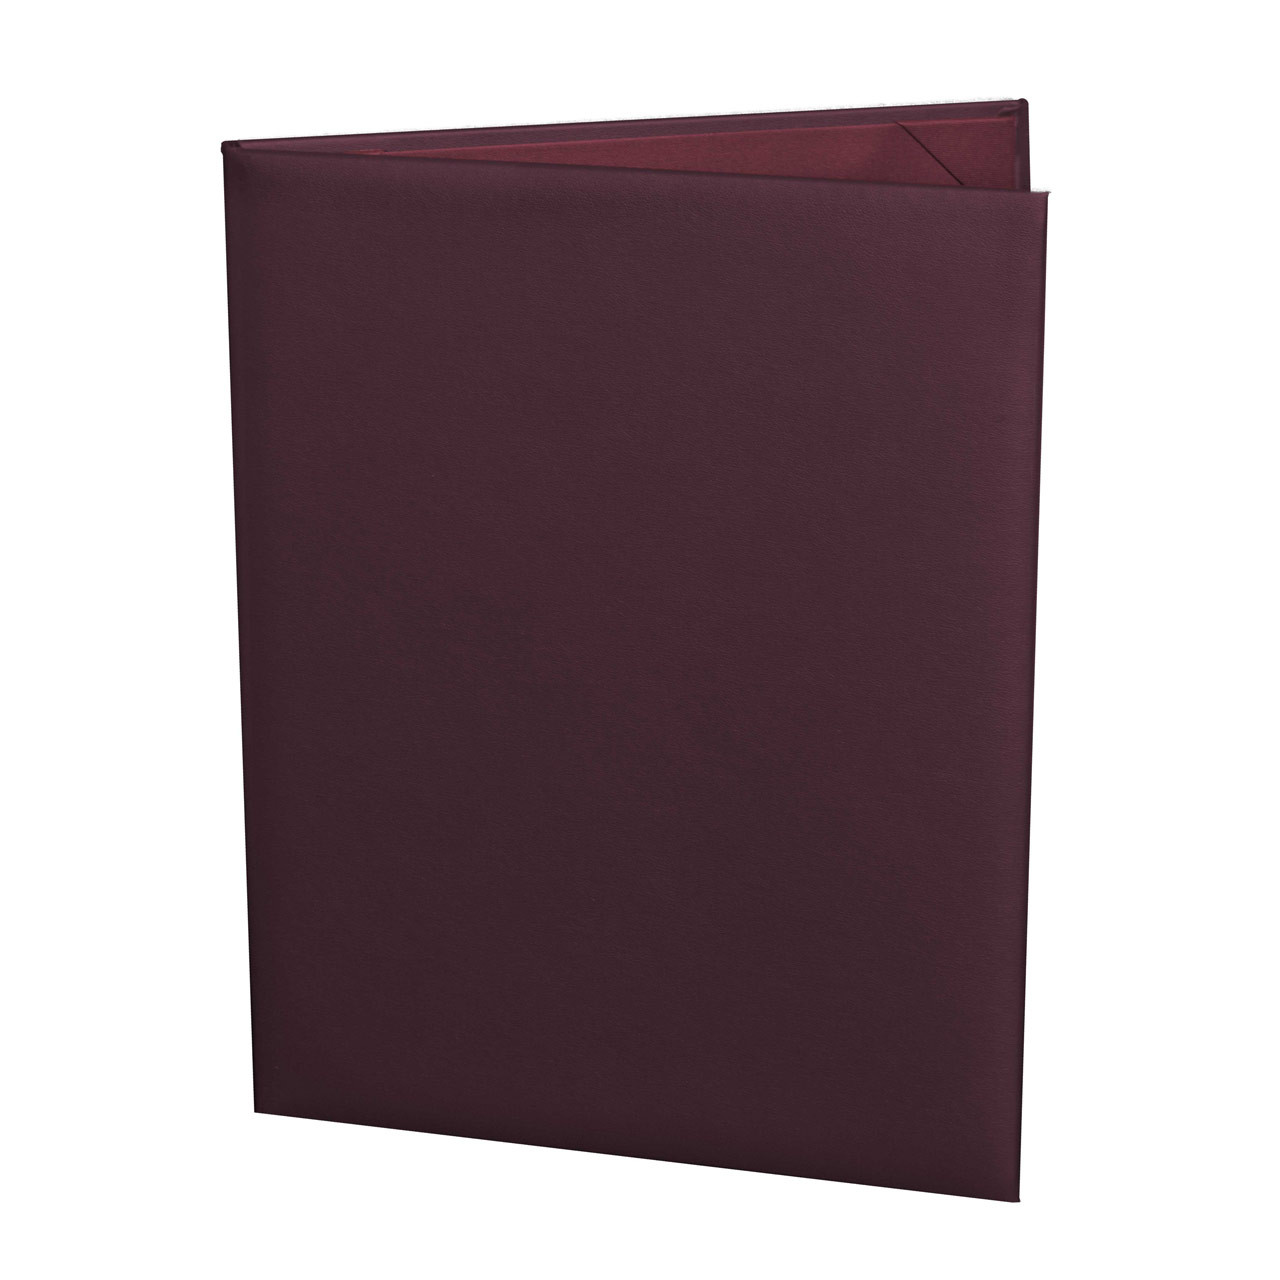 "8 1/2"" x 11"" Insert Port Outside Color"